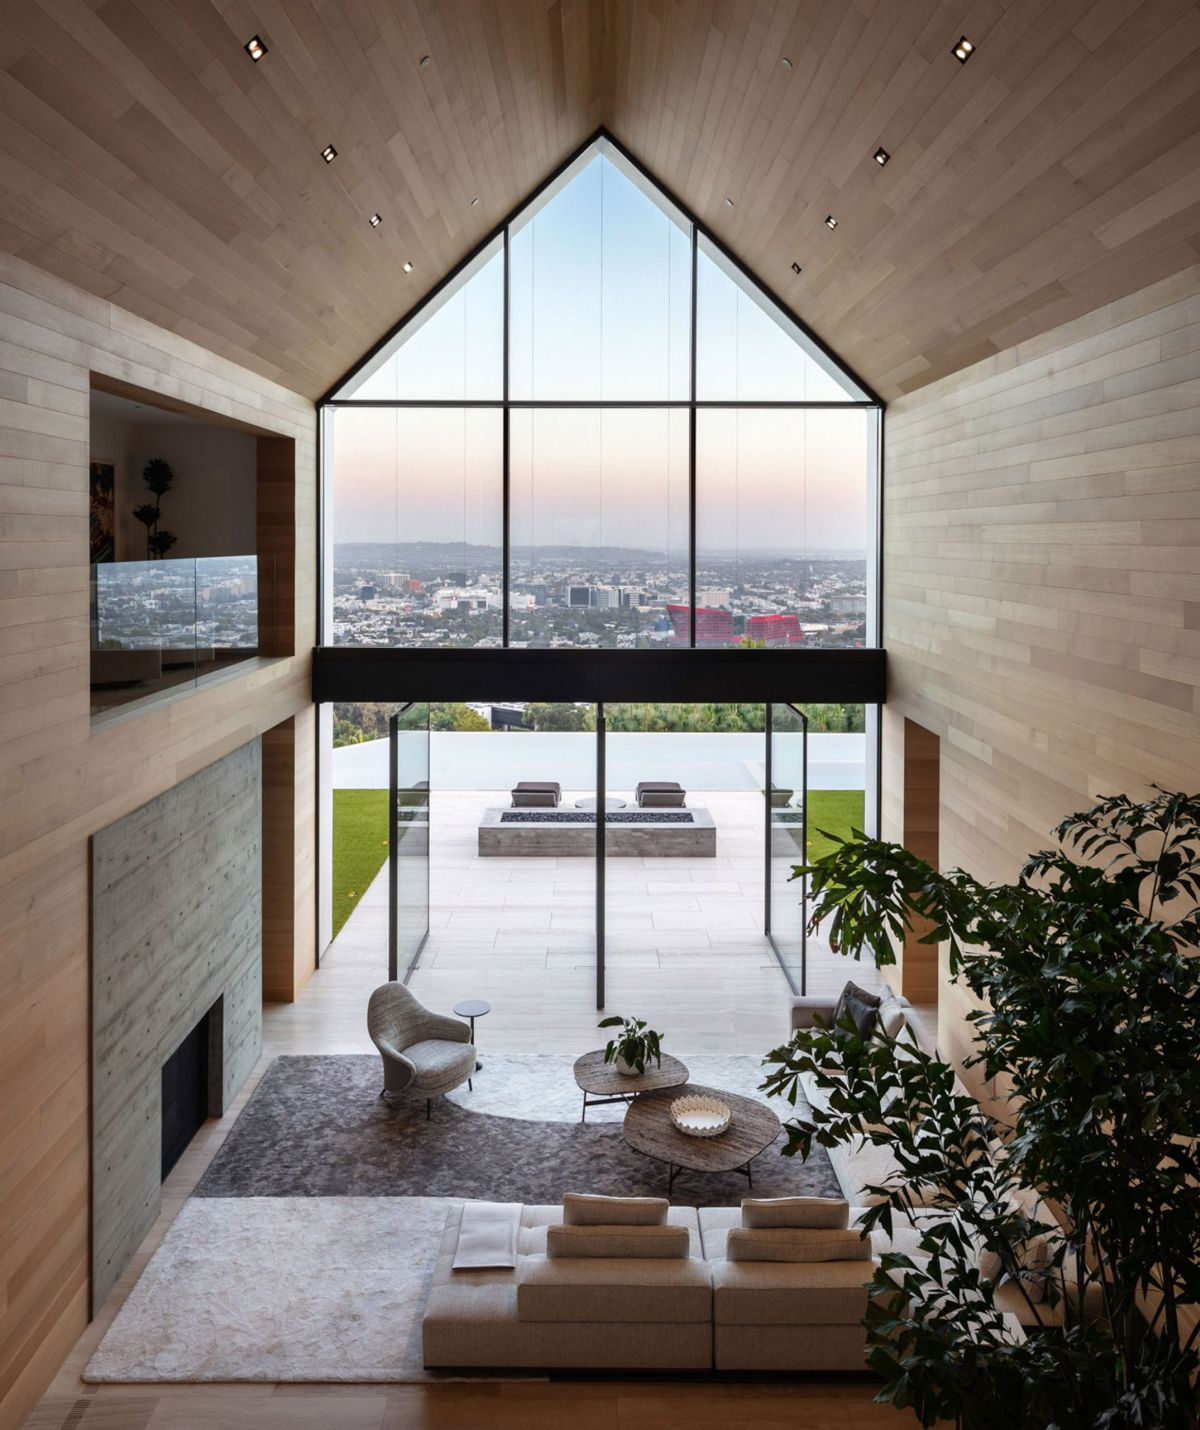 The interior spaces are simple and have little furniture which puts an emphasis on the outdoors and the panoramic views